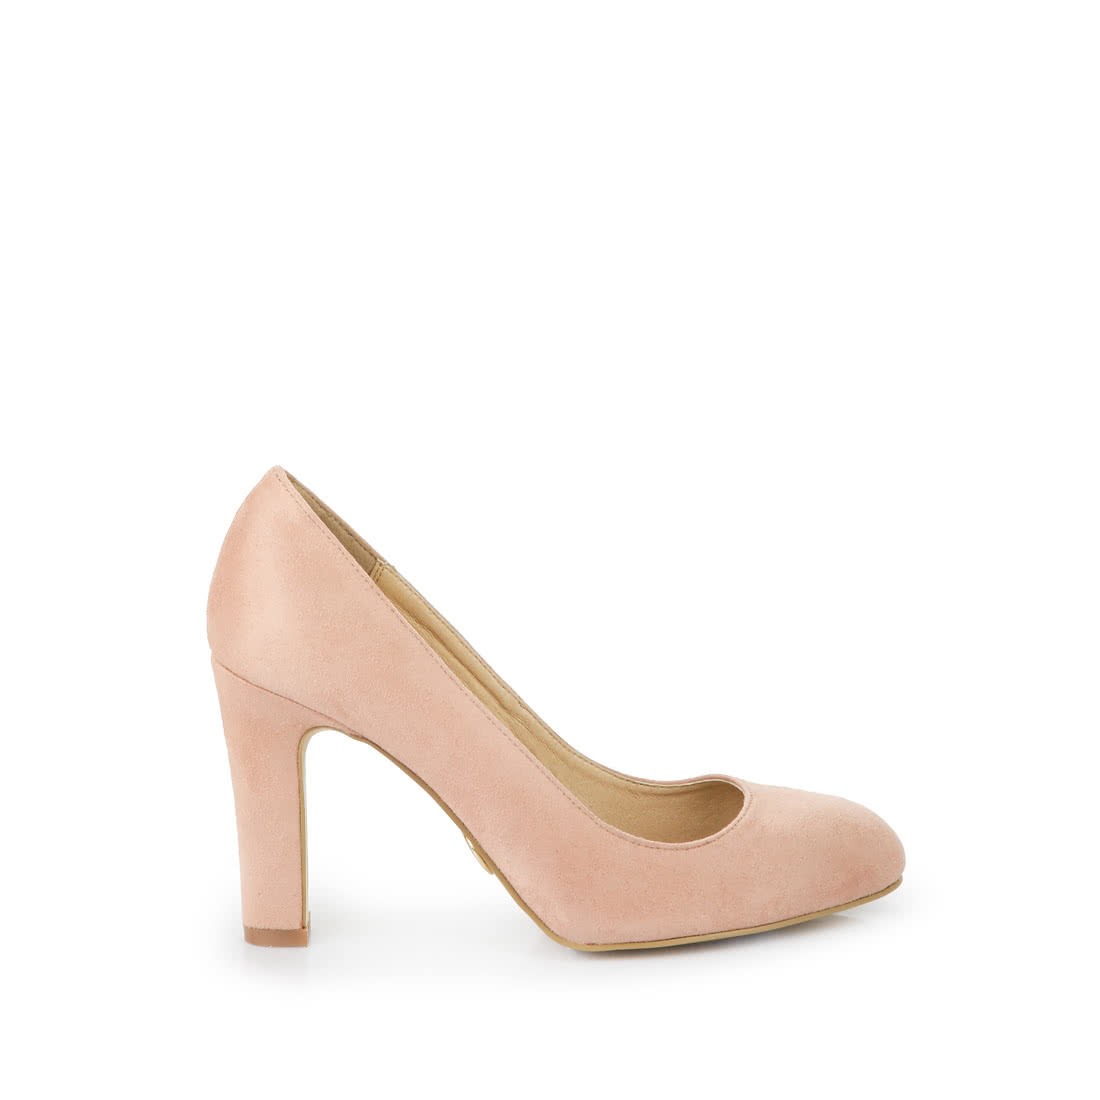 Buffalo Pumps in rosé mit Blockabsatz online kaufen   BUFFALO® 9f5799a4c1